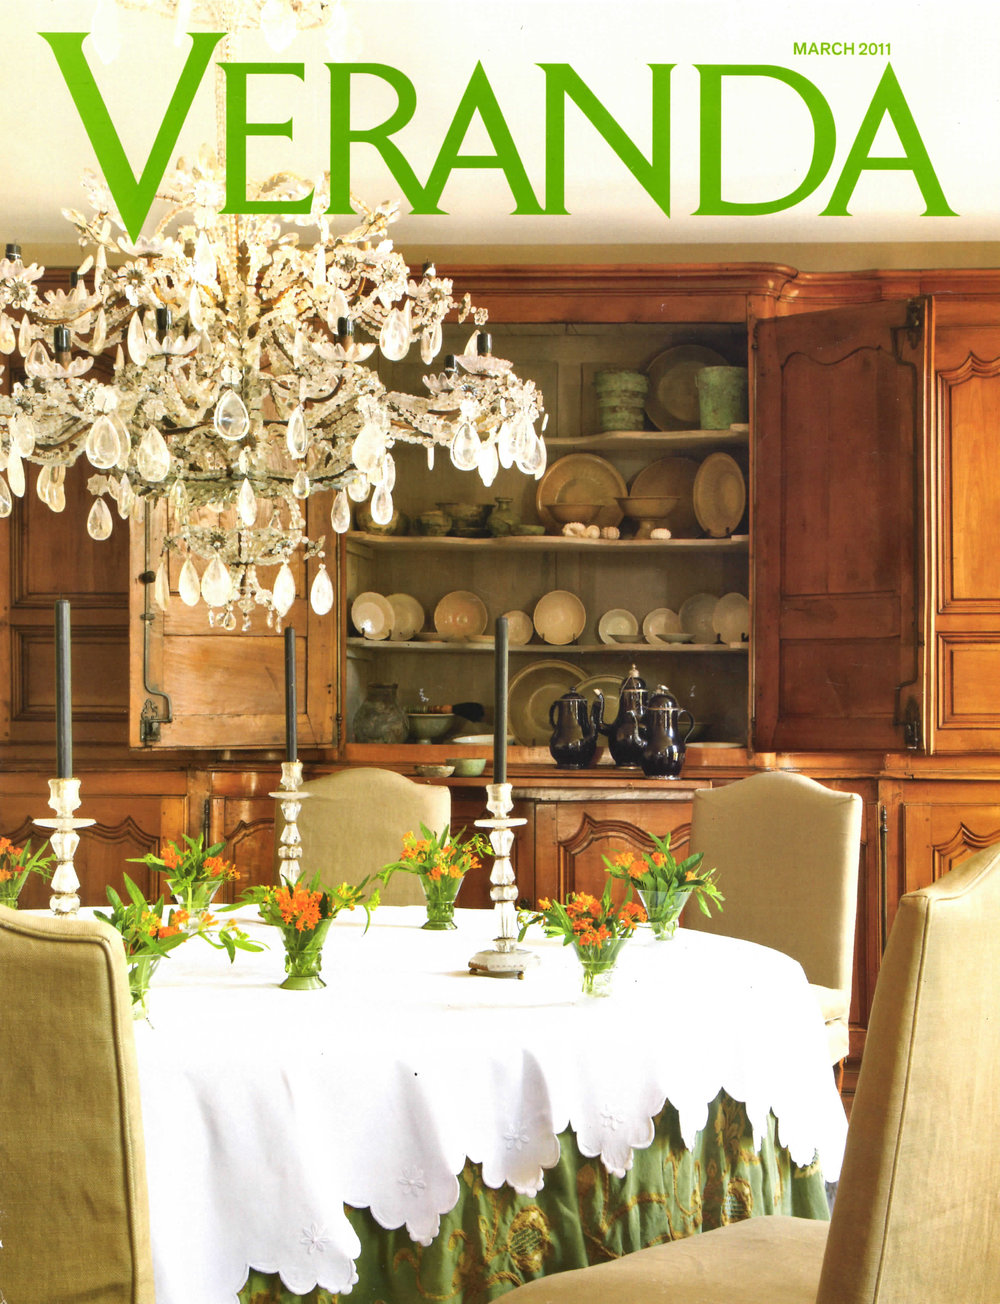 veranda march 2011 sconce cover.jpg